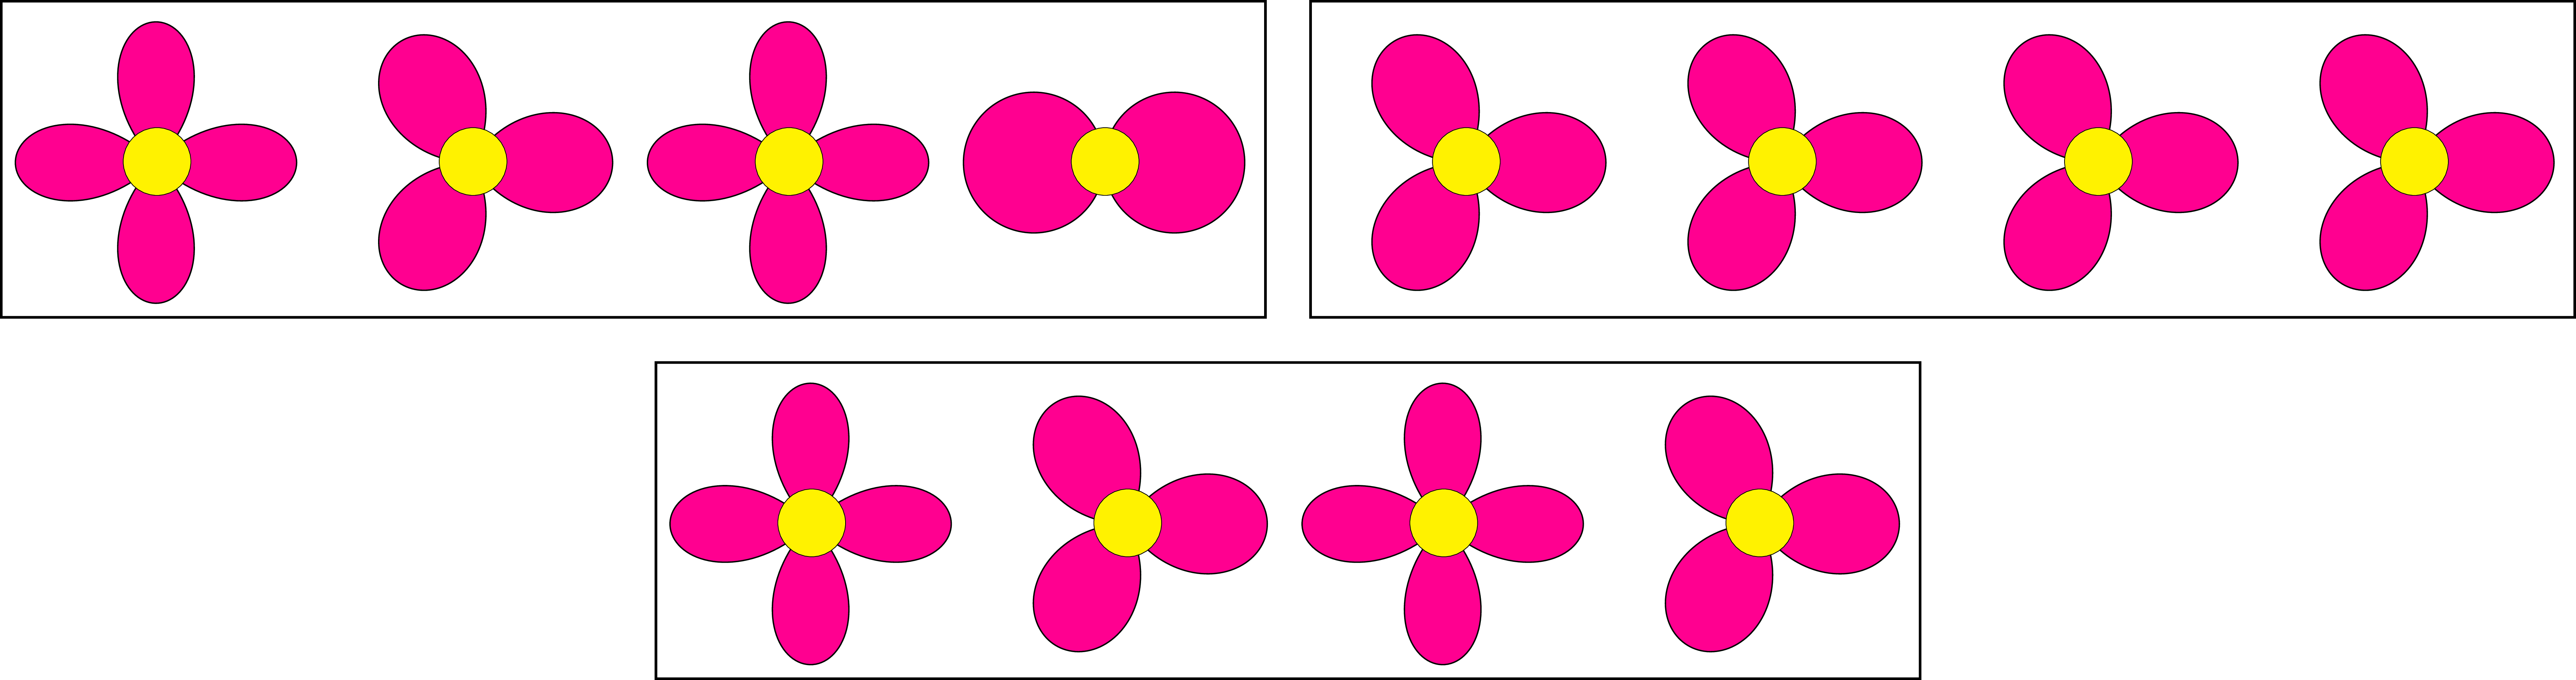 \includegraphics[width=0.9\textwidth ]{gift-flowers.png}